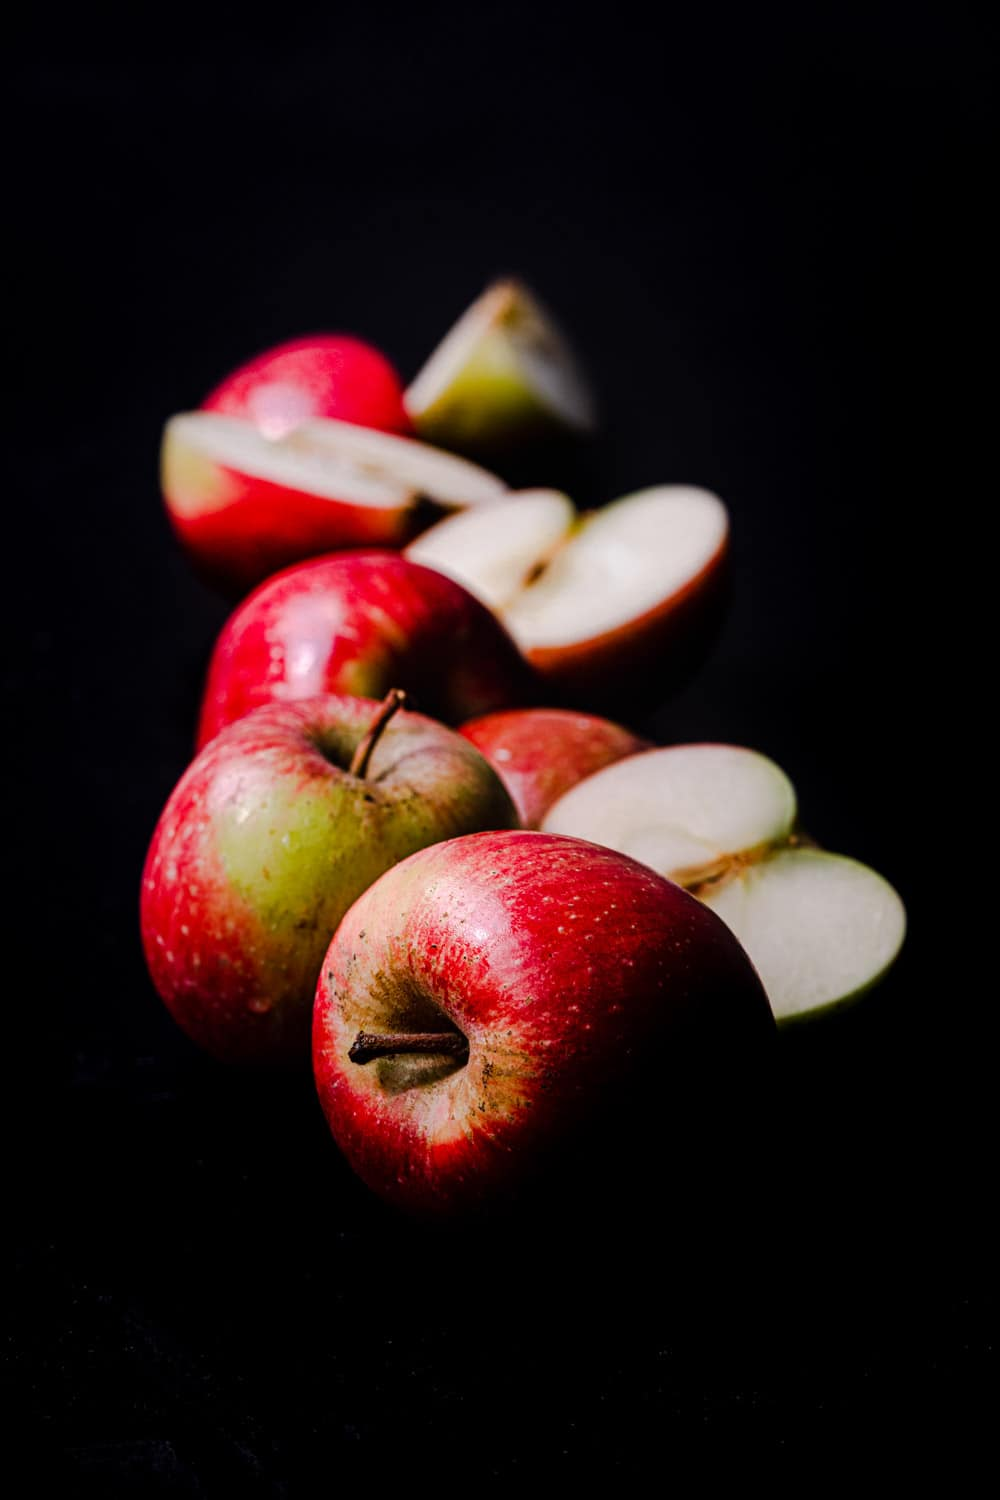 Little red apples, side angle shot, whole, cut in half and quartered; on a black background.